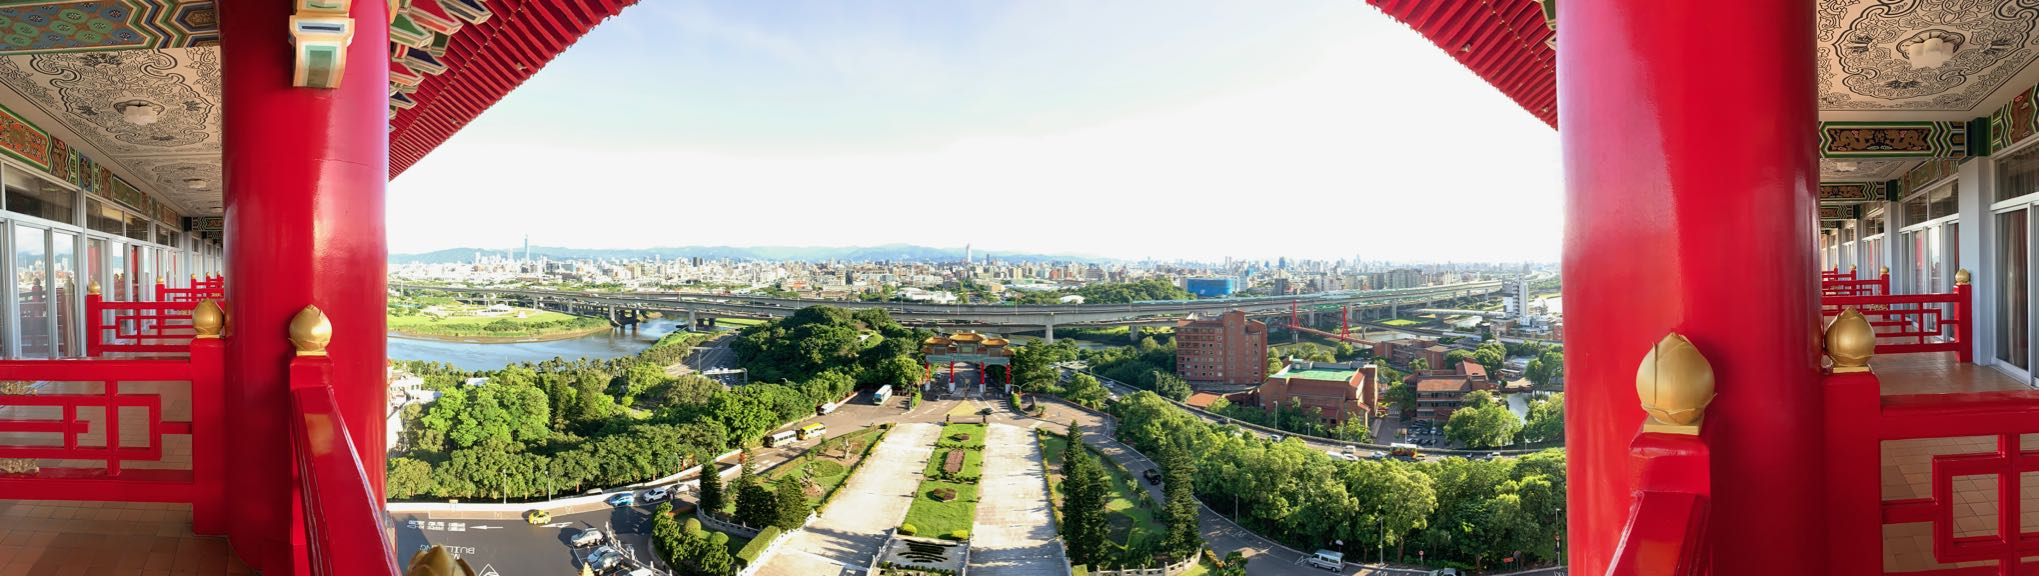 Taipei from the grand hotel